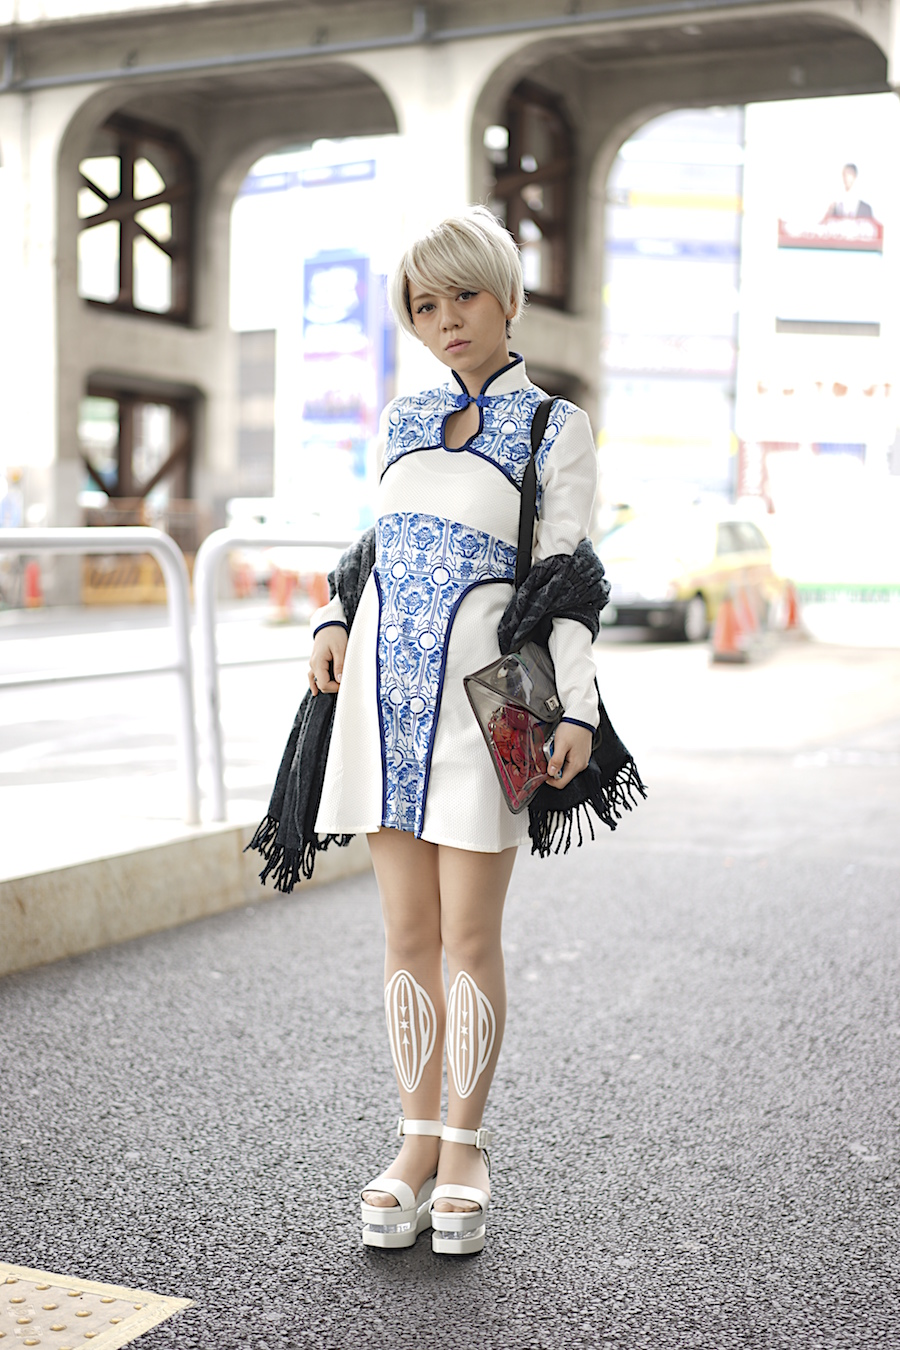 Europe Fashion Men 39 S And Women Wears High Impact Clothing From The Street Style Of Tokyo